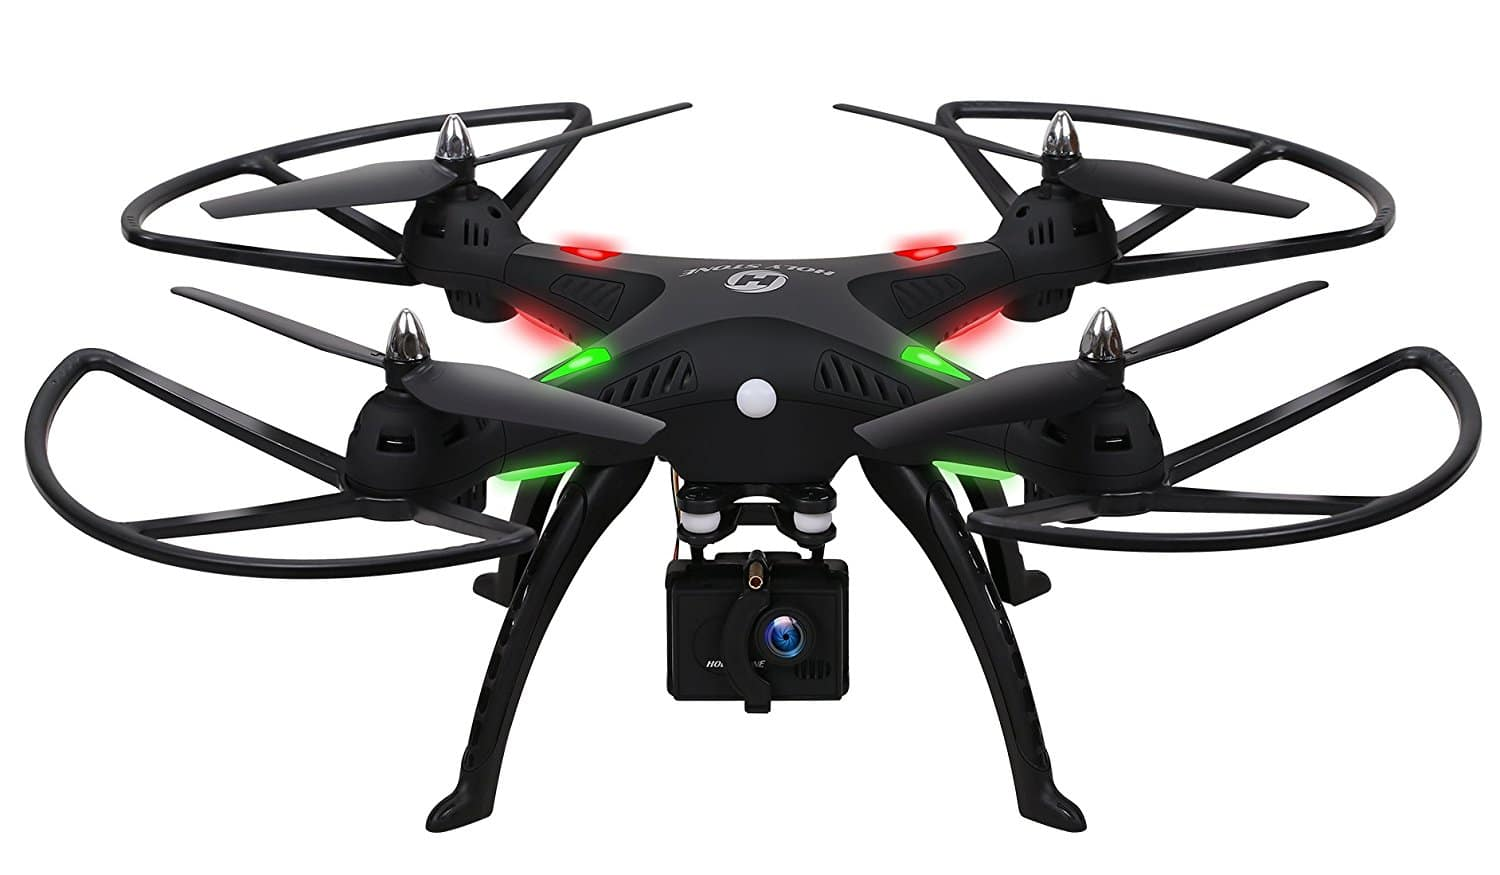 HS300 6-Axis Headless RC Quadcopter Drone with 1080P Camera for $98.99 AC + Free Shipping